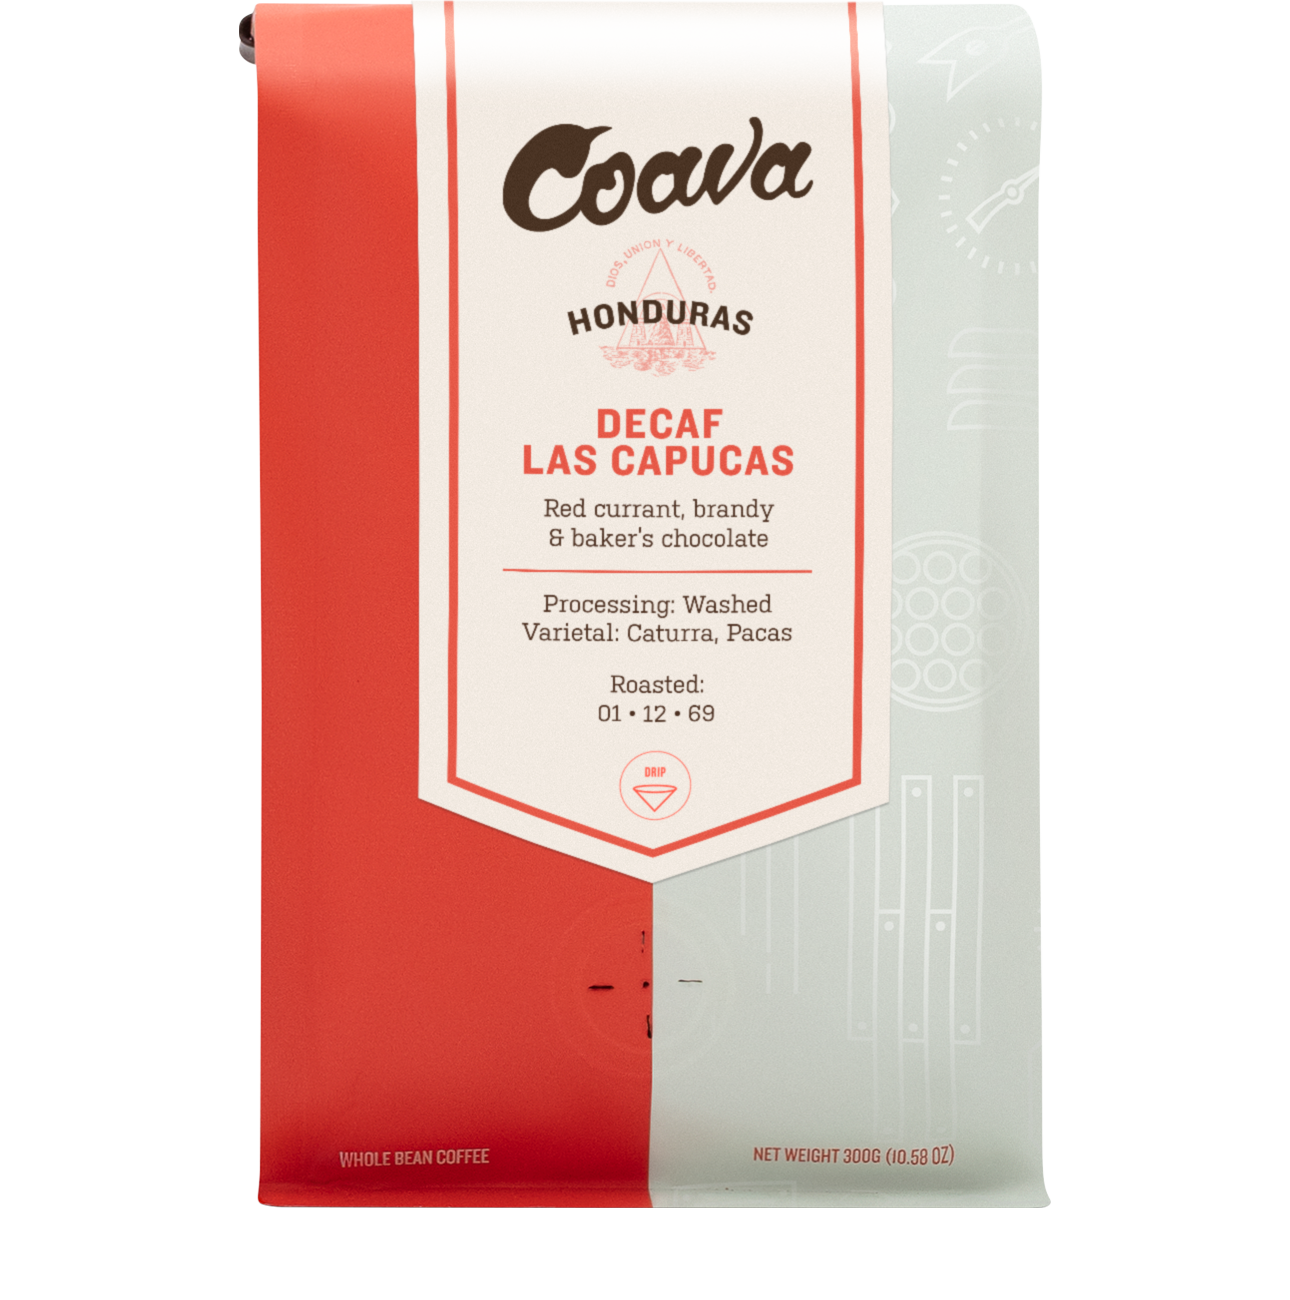 Decaf Las Capucas - Whole Bean